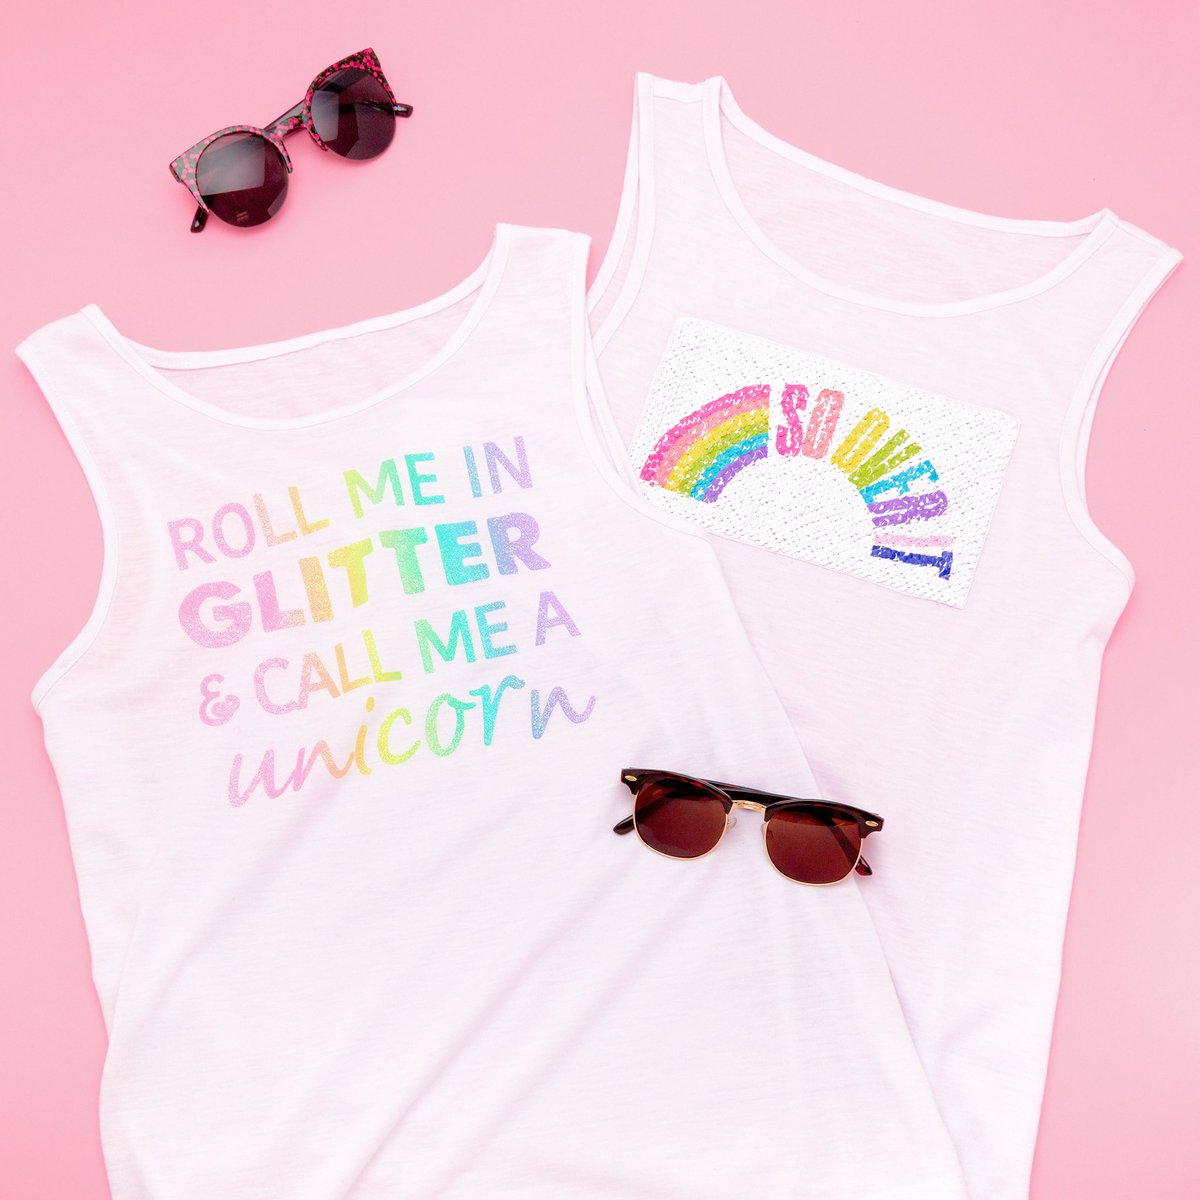 a4a22df7 Get summer ready with our clubmaster sunglasses, rainbow tank tops &  colorful coin purses 😎 ✨ 🌈 Shop in store & online now!  #ItsAtClairespic.twitter.com/ ...